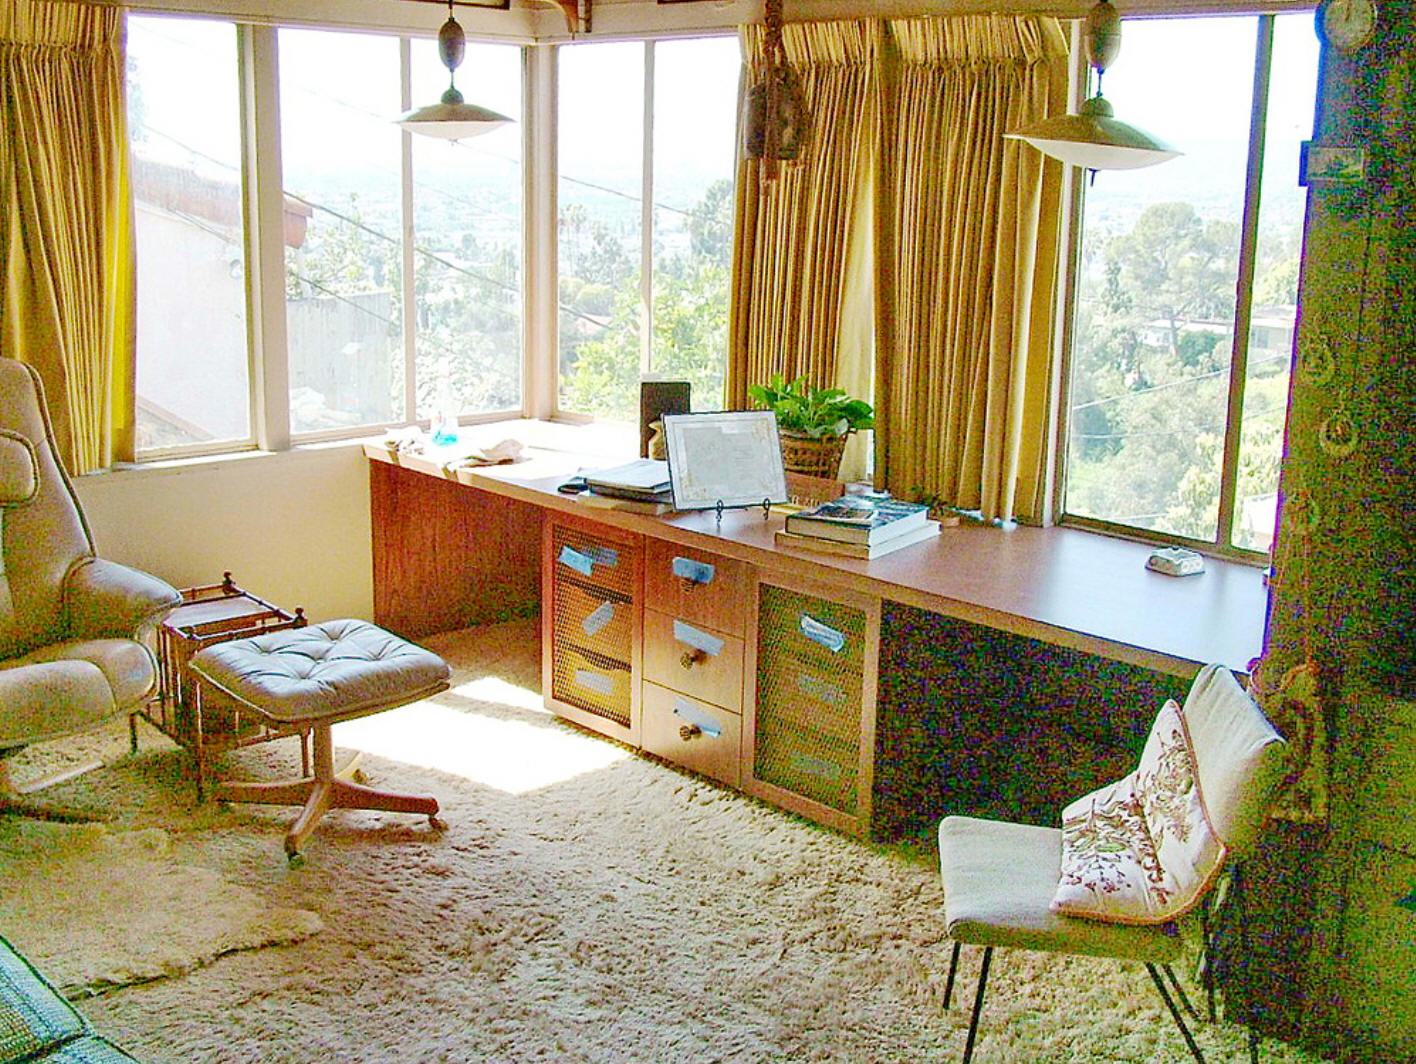 Usmodernist Soriano 1953 Bel Air Wiring Diagram 1936 The Emanuel M And Helen Lipetz House 1843 9 North Dillon Street Los Angeles Ca Overlooks Silver Lake It Created A Sensation In Paris Where